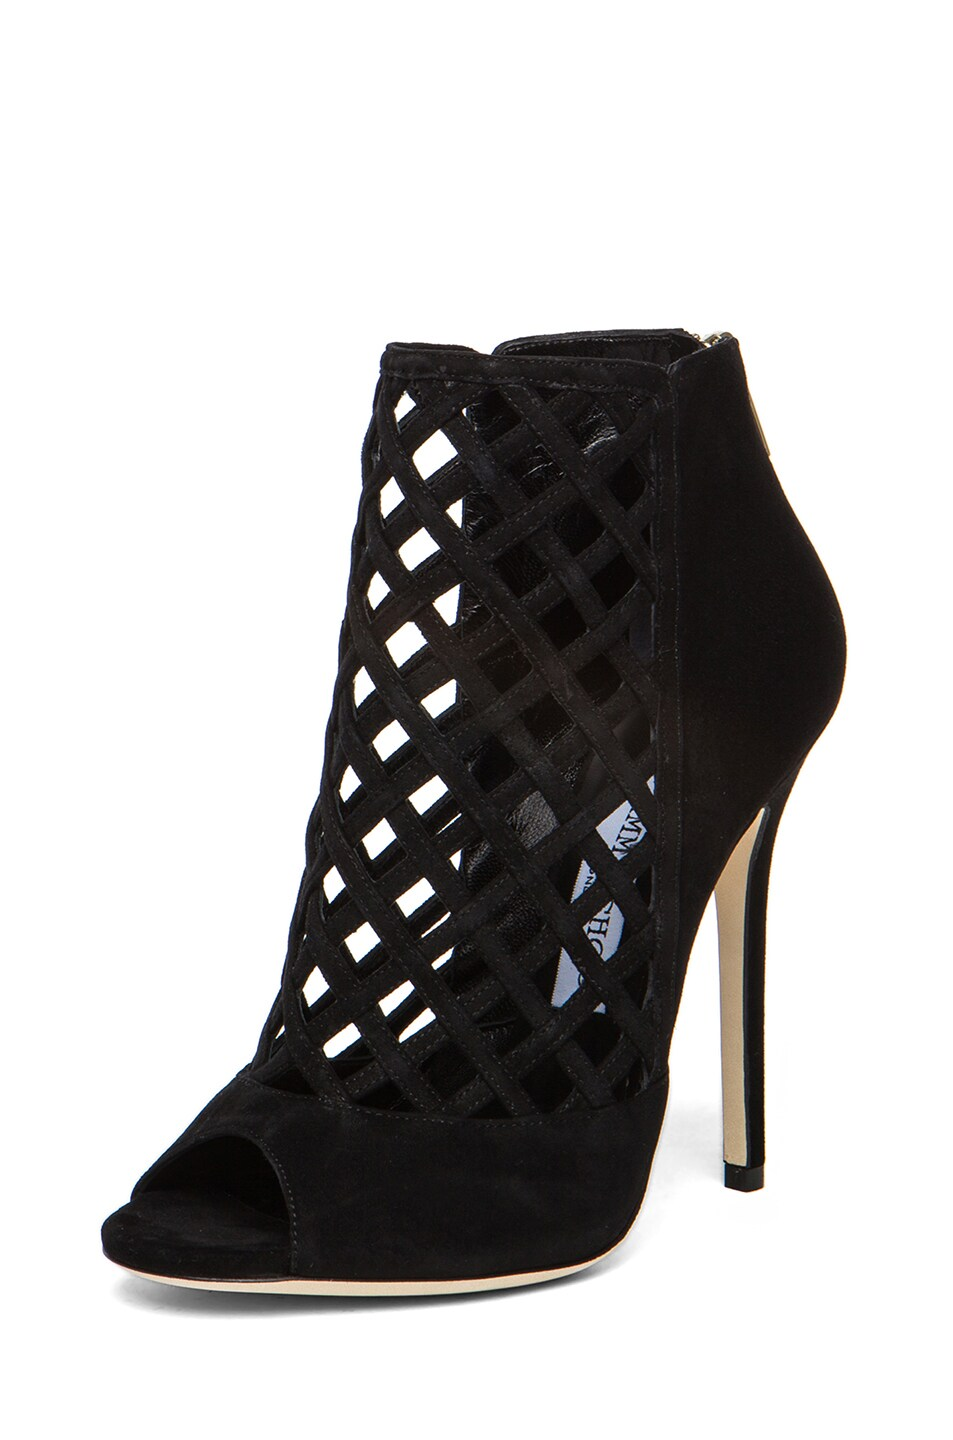 Image 2 of Jimmy Choo Dane Suede Ankle Boots in Black